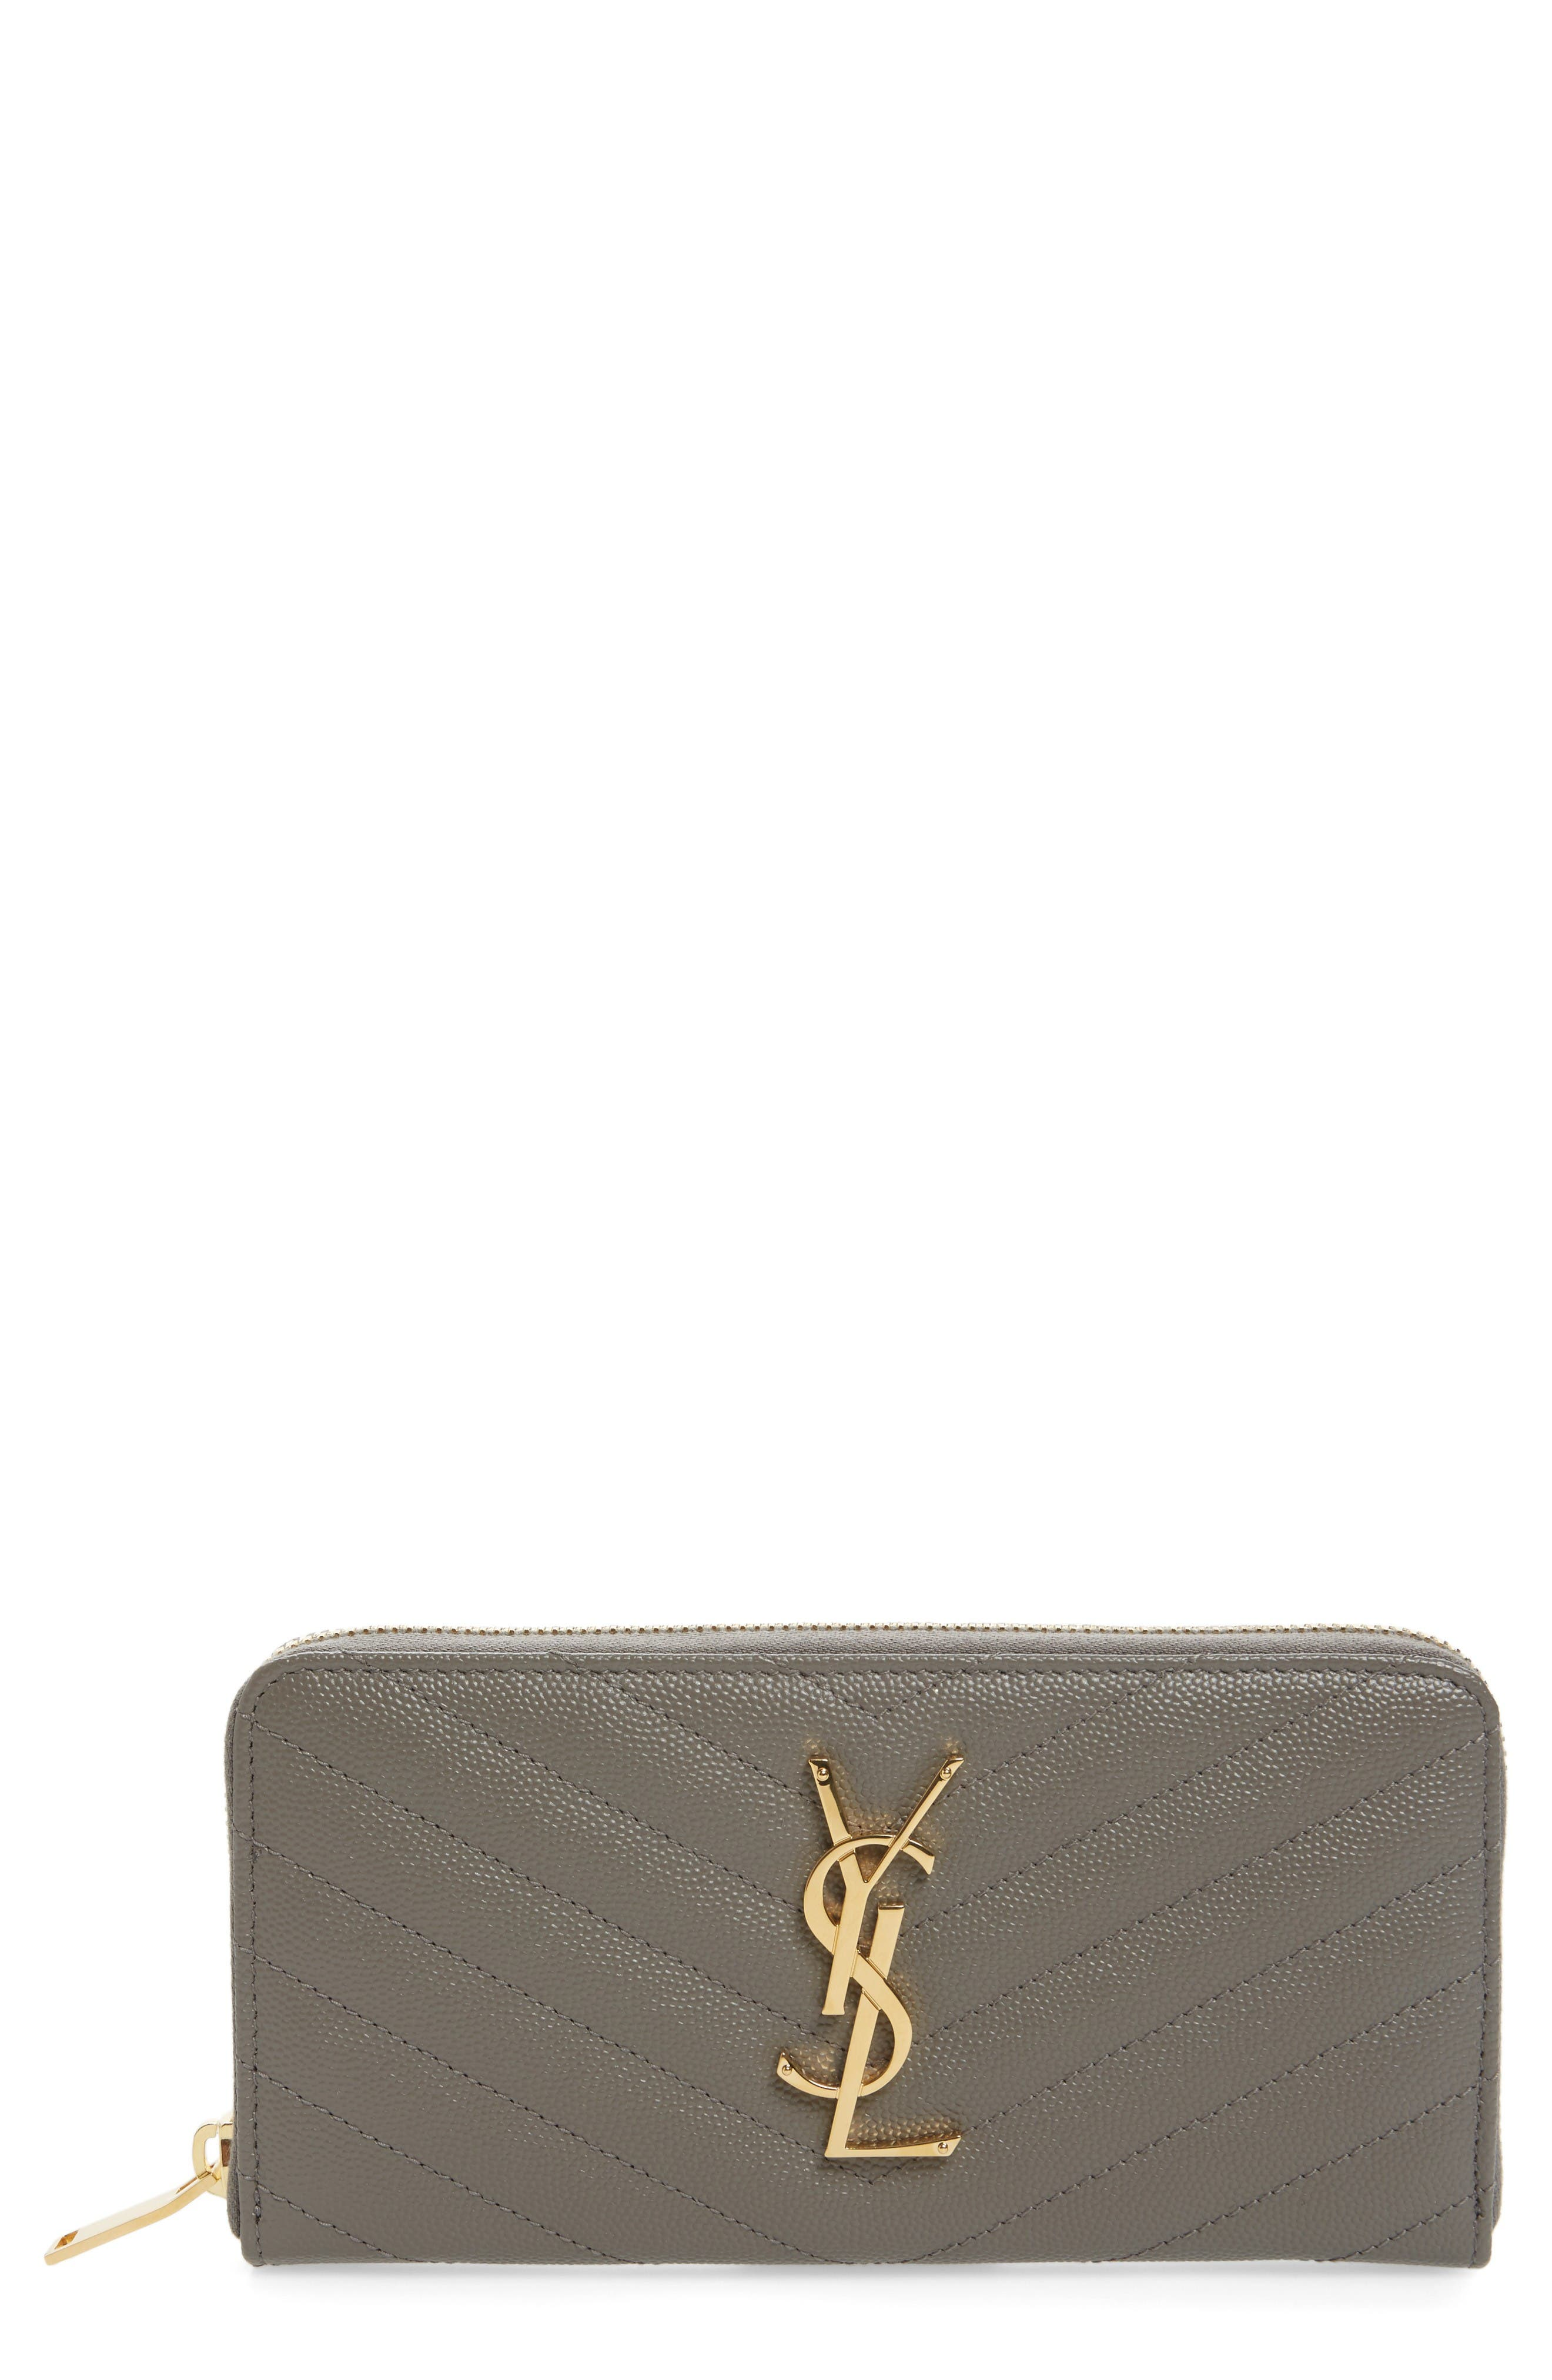 SAINT LAURENT 'Monogram' Quilted Leather Wallet